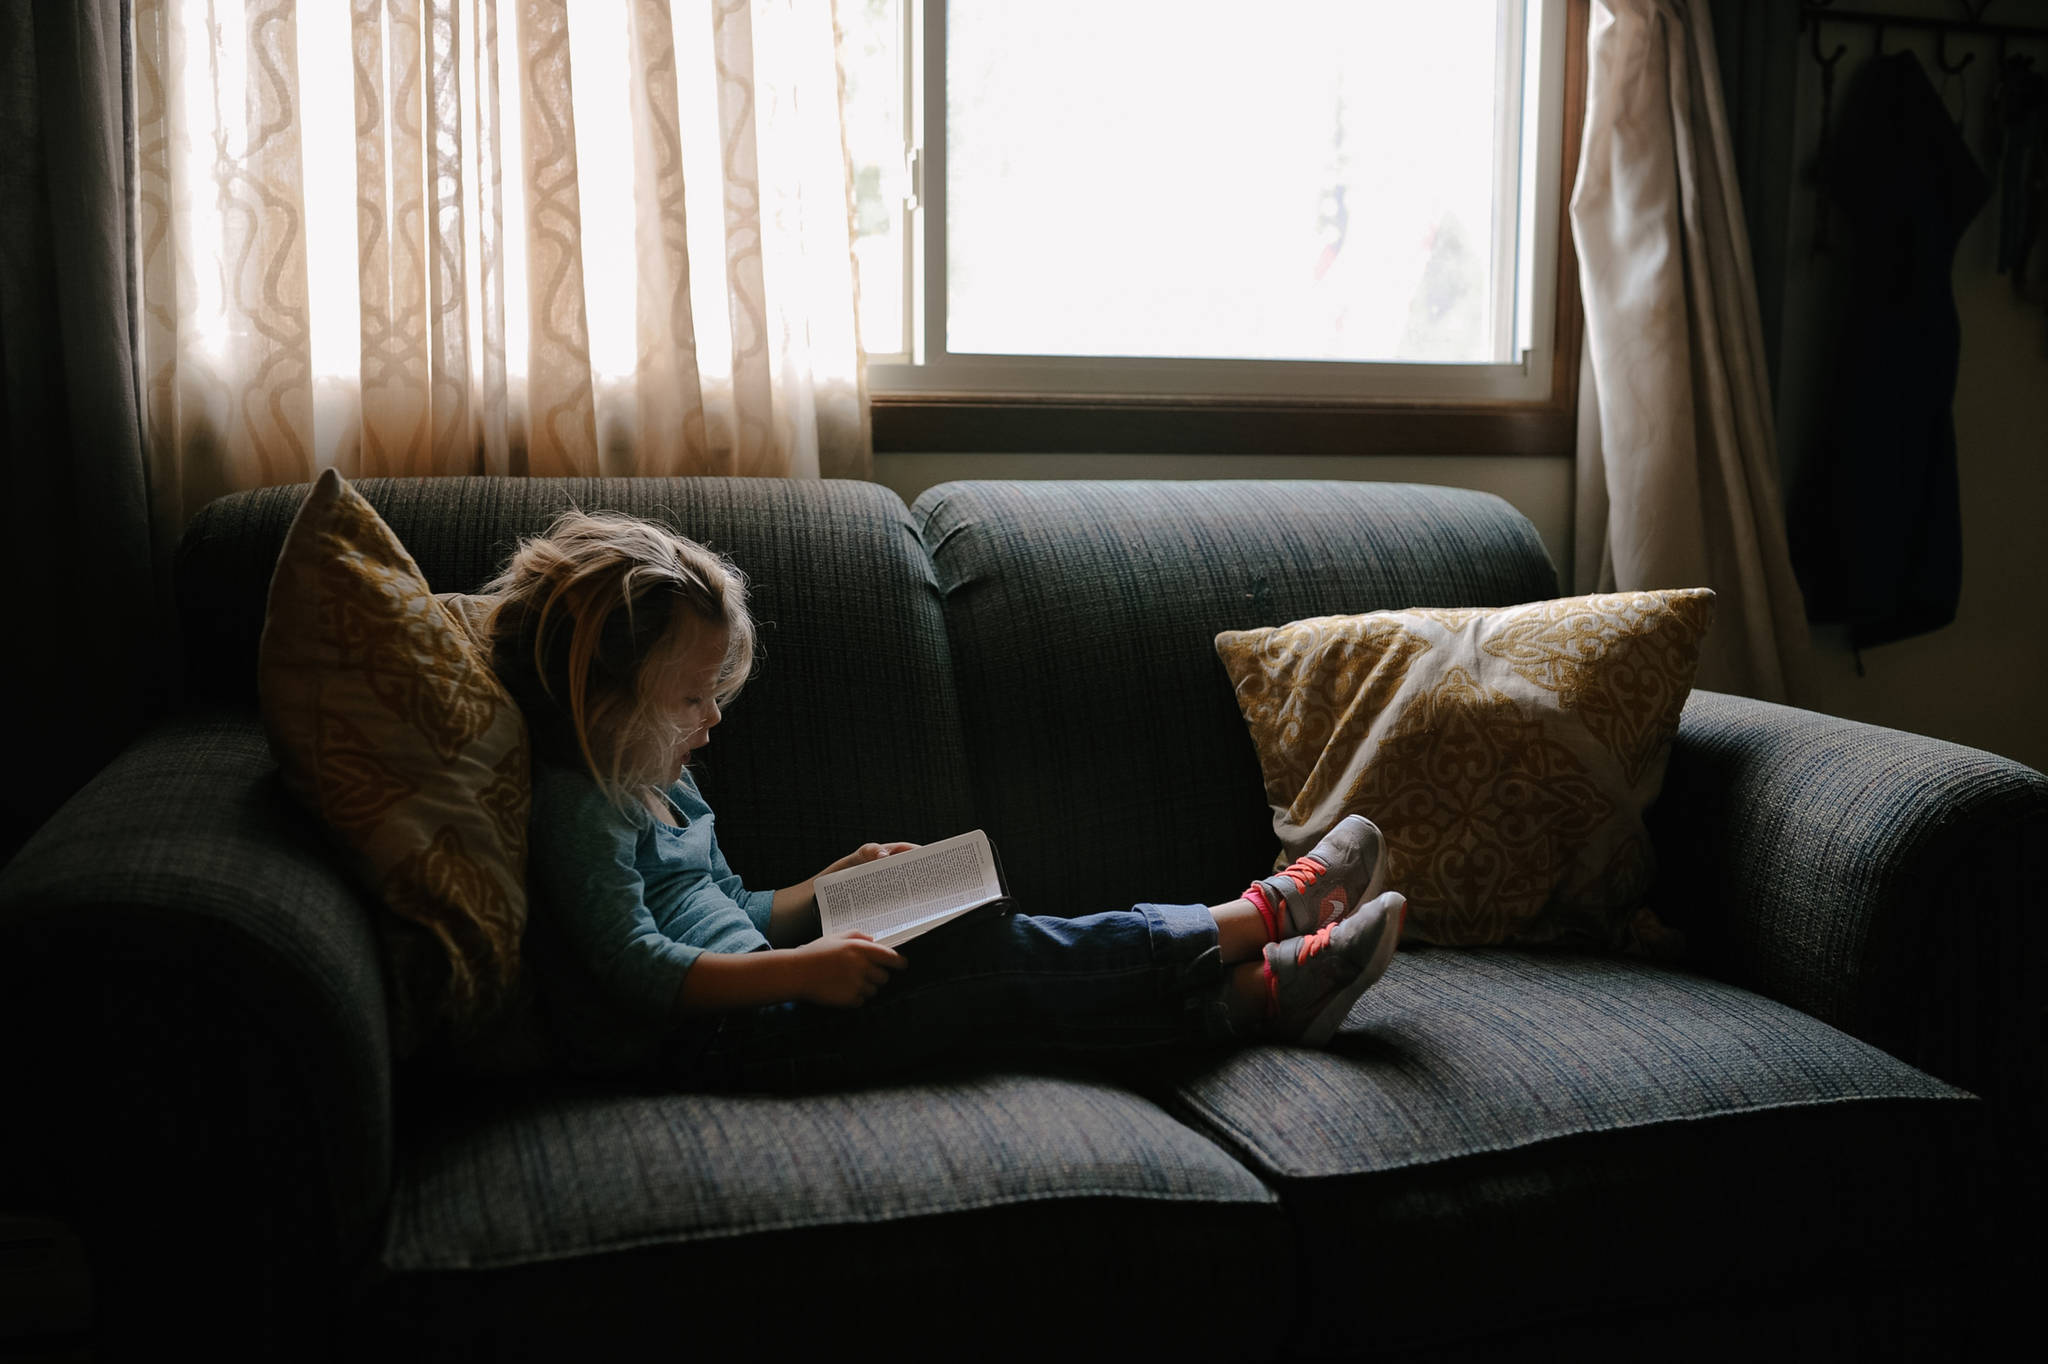 Opinion: Our children must learn to read by age 9